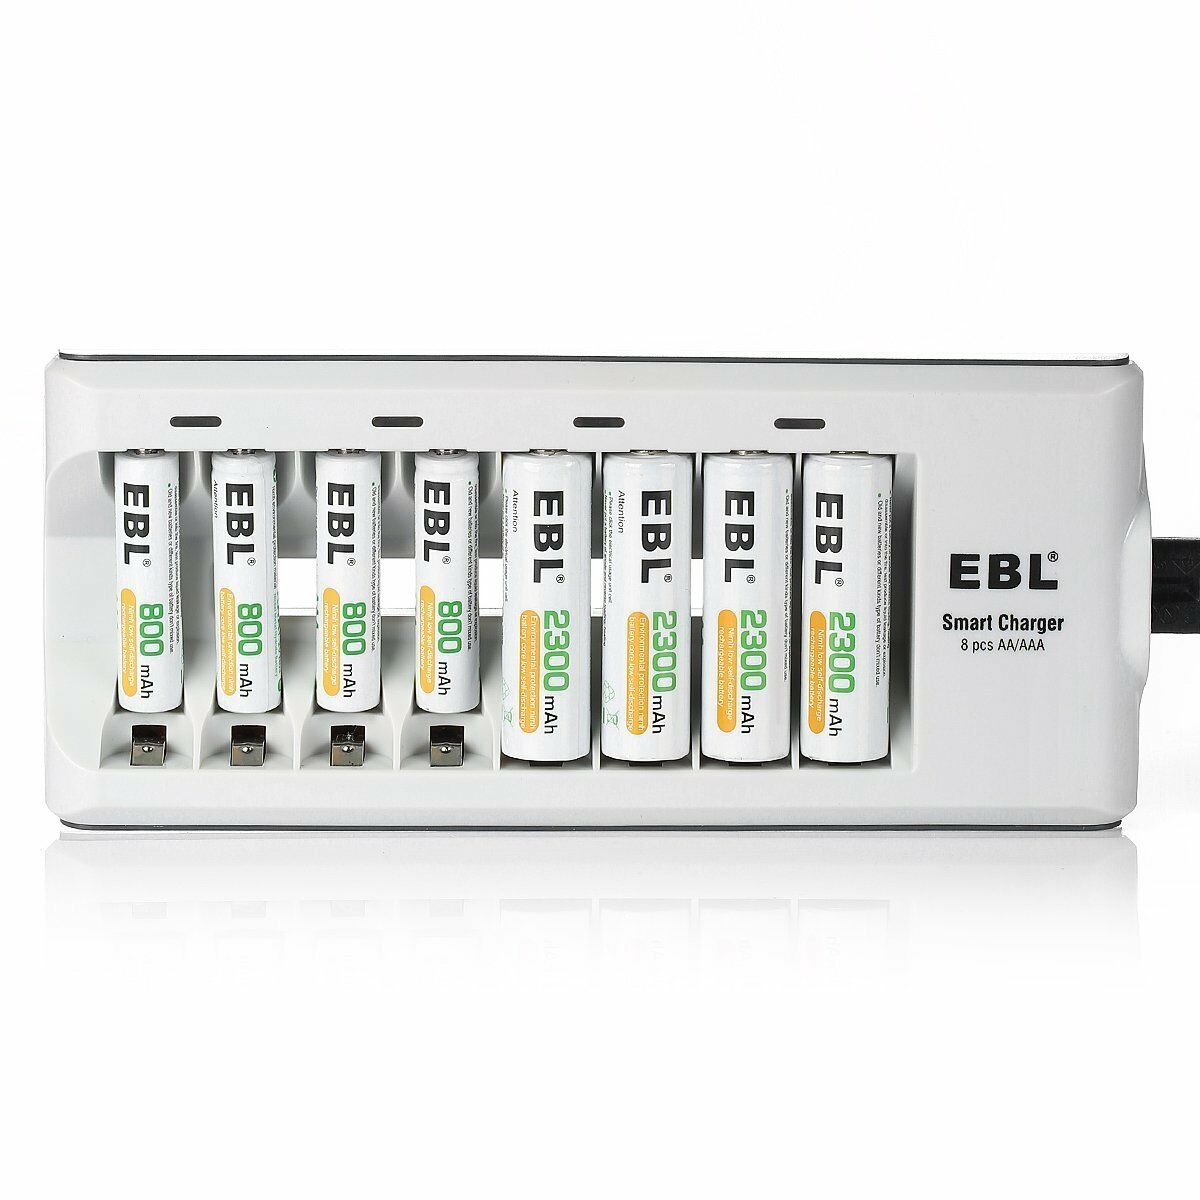 EBL 8 Slot Battery Charger For Ni-MH Ni-CD AA AAA Rechargeable Batteries